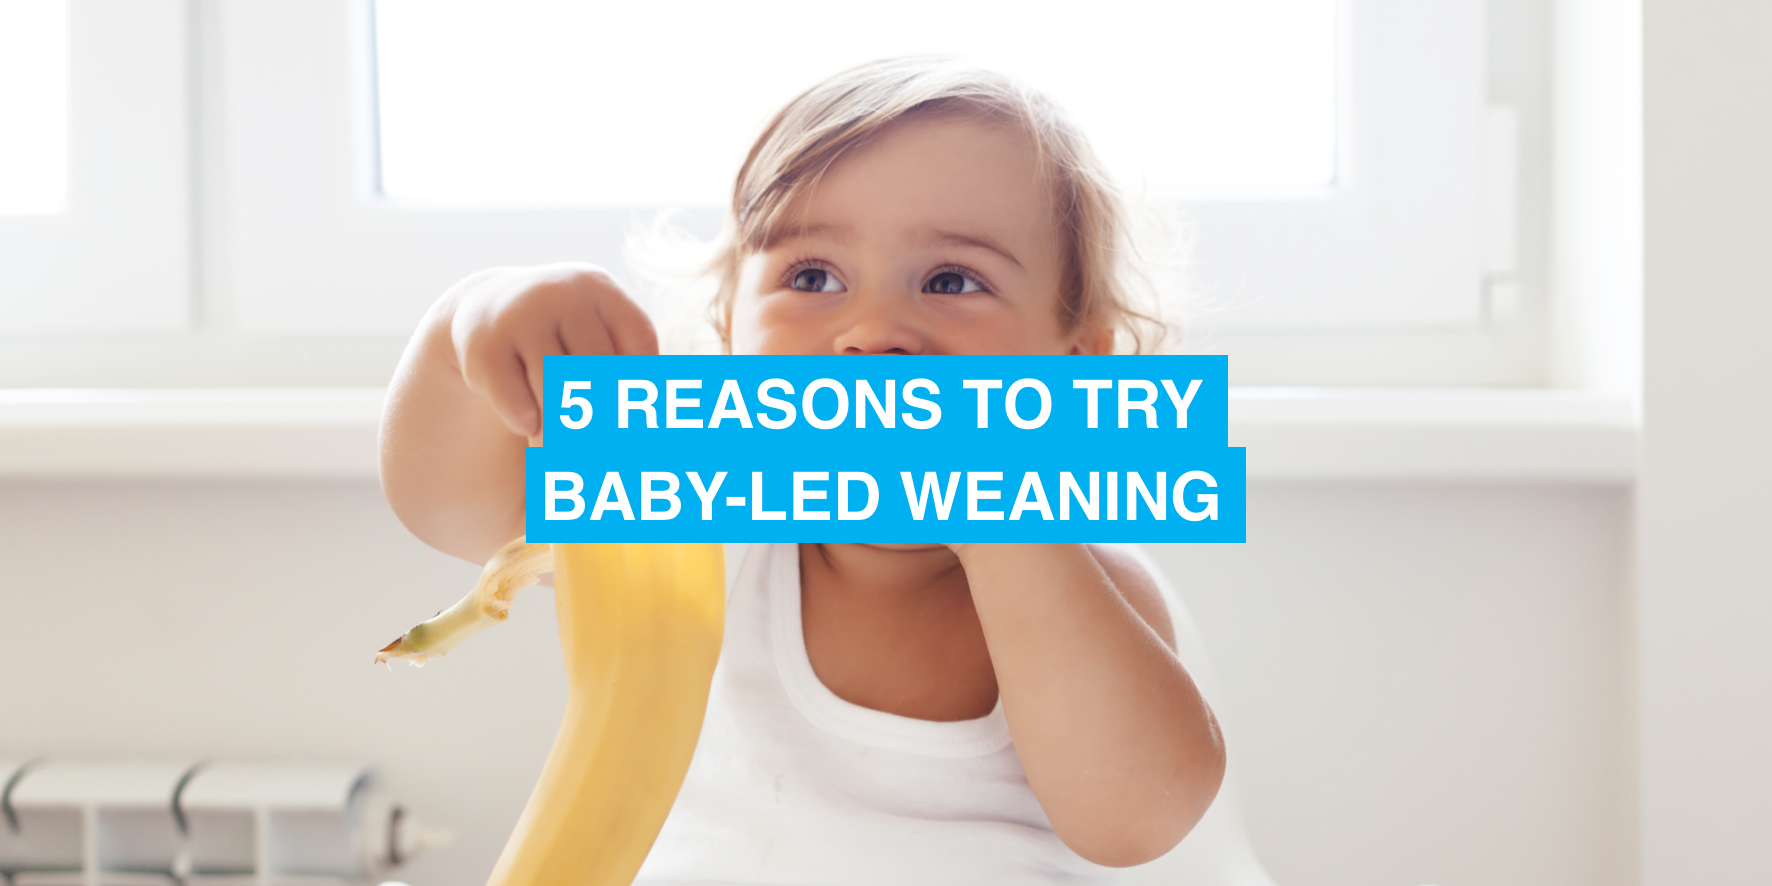 5 reasons to try baby-led weaning